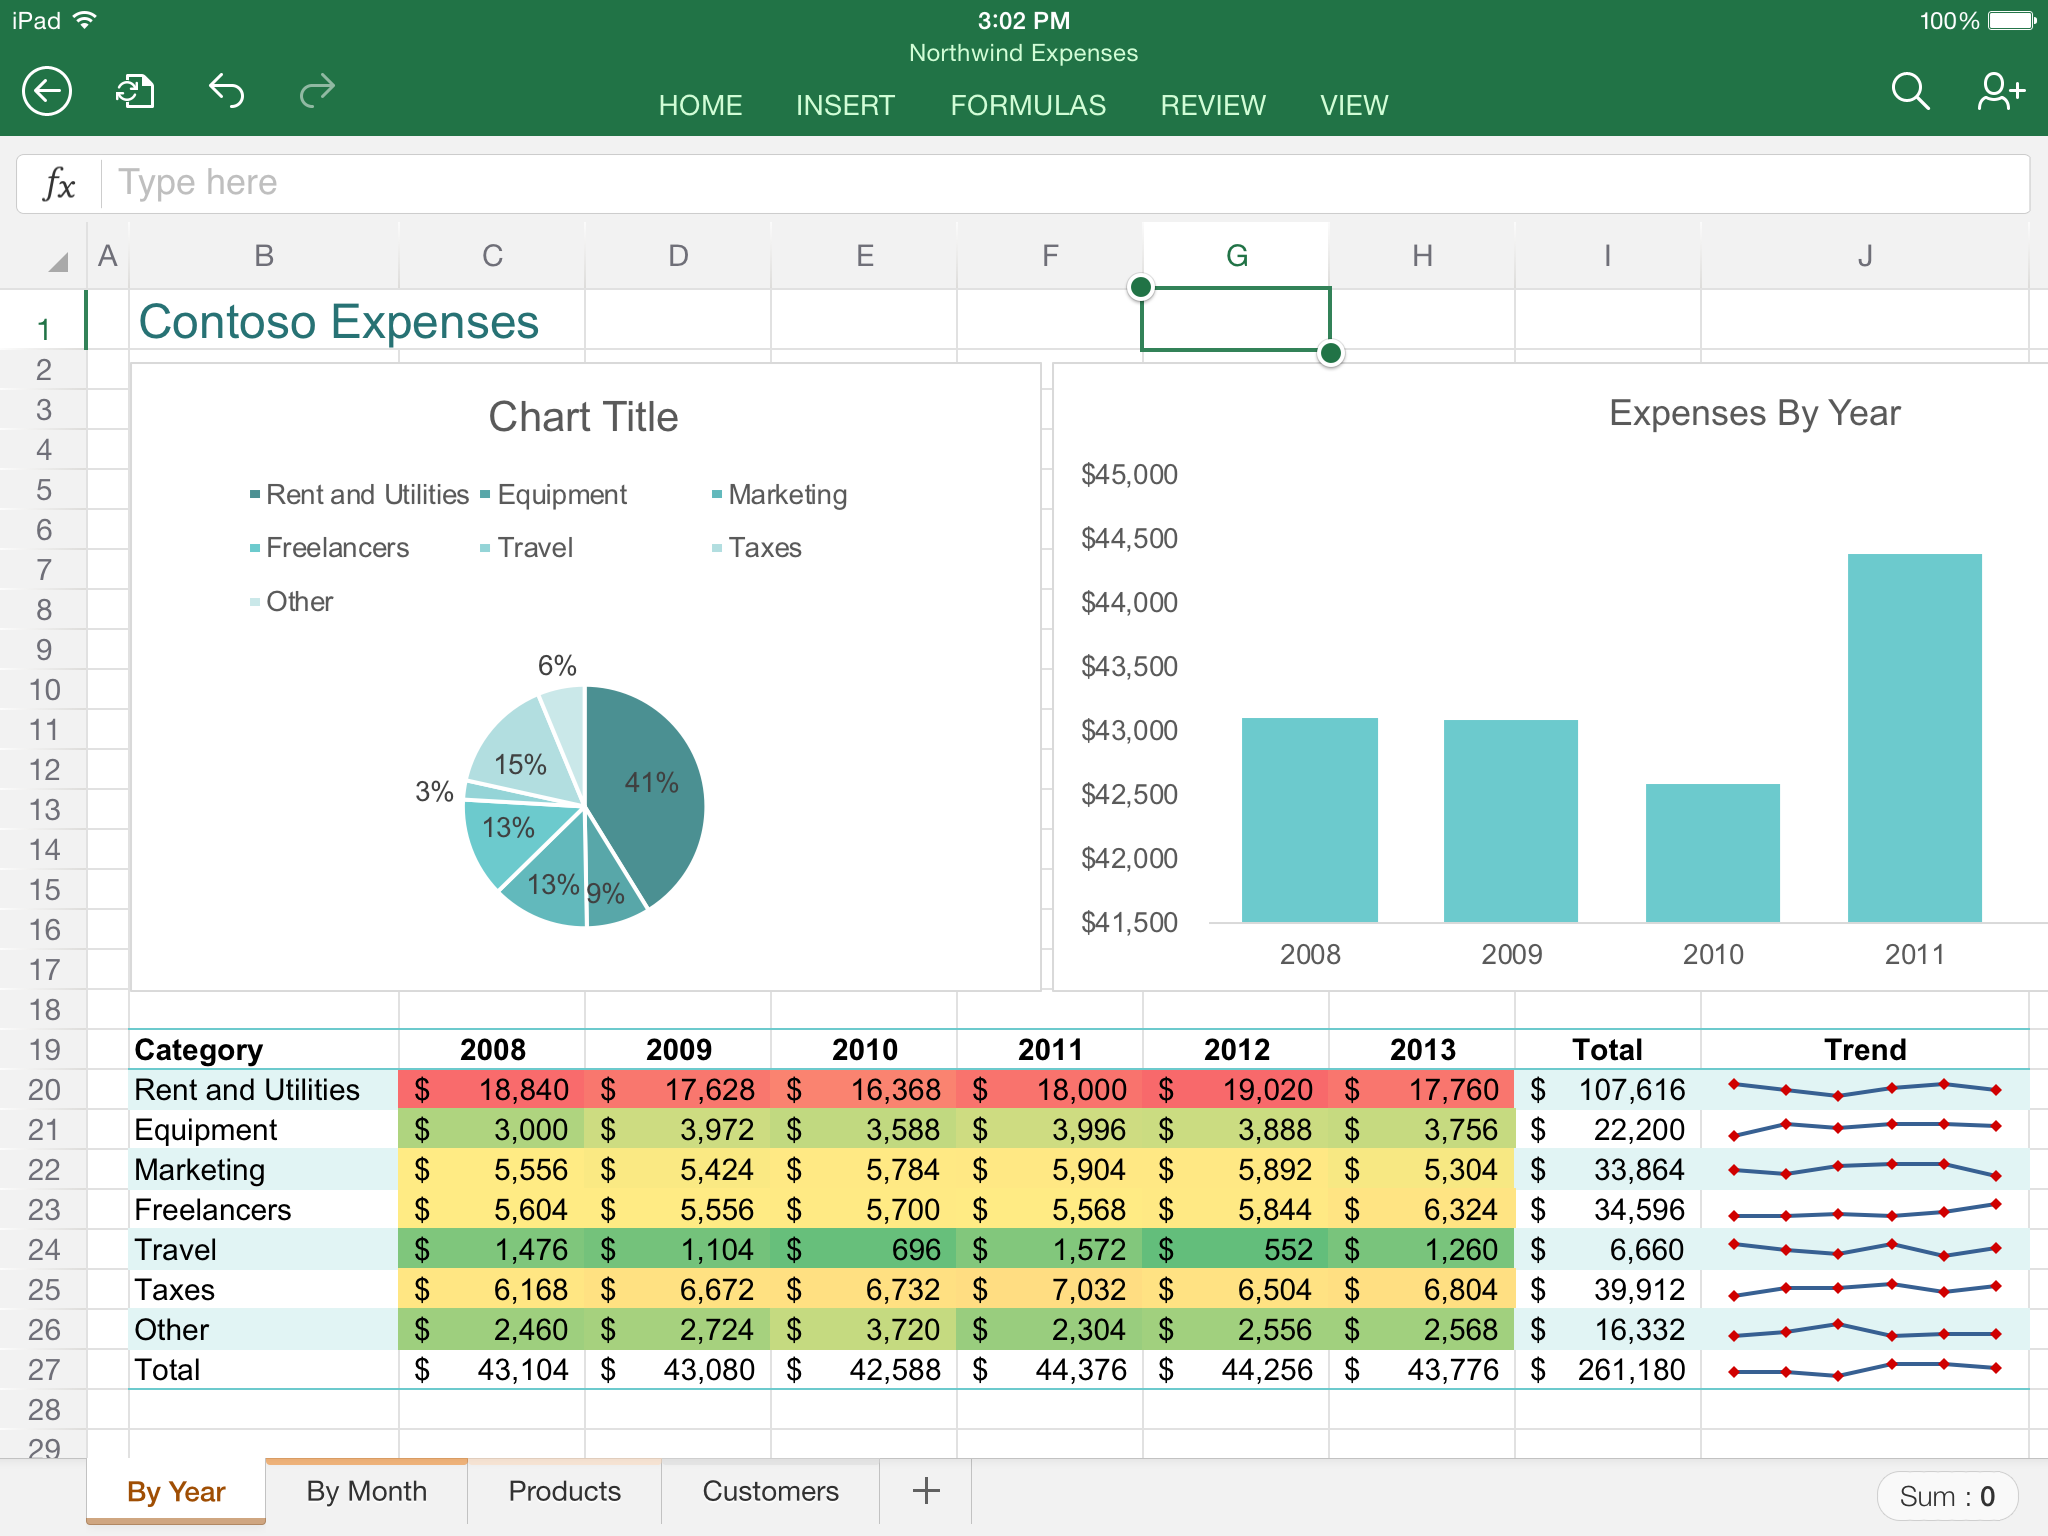 Ediblewildsus  Wonderful App Highlight Excel  Mobile Digital Now With Engaging Excel In Action With Delectable Excel Spread Sheets Also How To Use Linest In Excel In Addition Where Is Developer Tab In Excel  And Excel Downlod As Well As Excel File Read Only Additionally Excel Ruler From Youstonybrookedu With Ediblewildsus  Engaging App Highlight Excel  Mobile Digital Now With Delectable Excel In Action And Wonderful Excel Spread Sheets Also How To Use Linest In Excel In Addition Where Is Developer Tab In Excel  From Youstonybrookedu